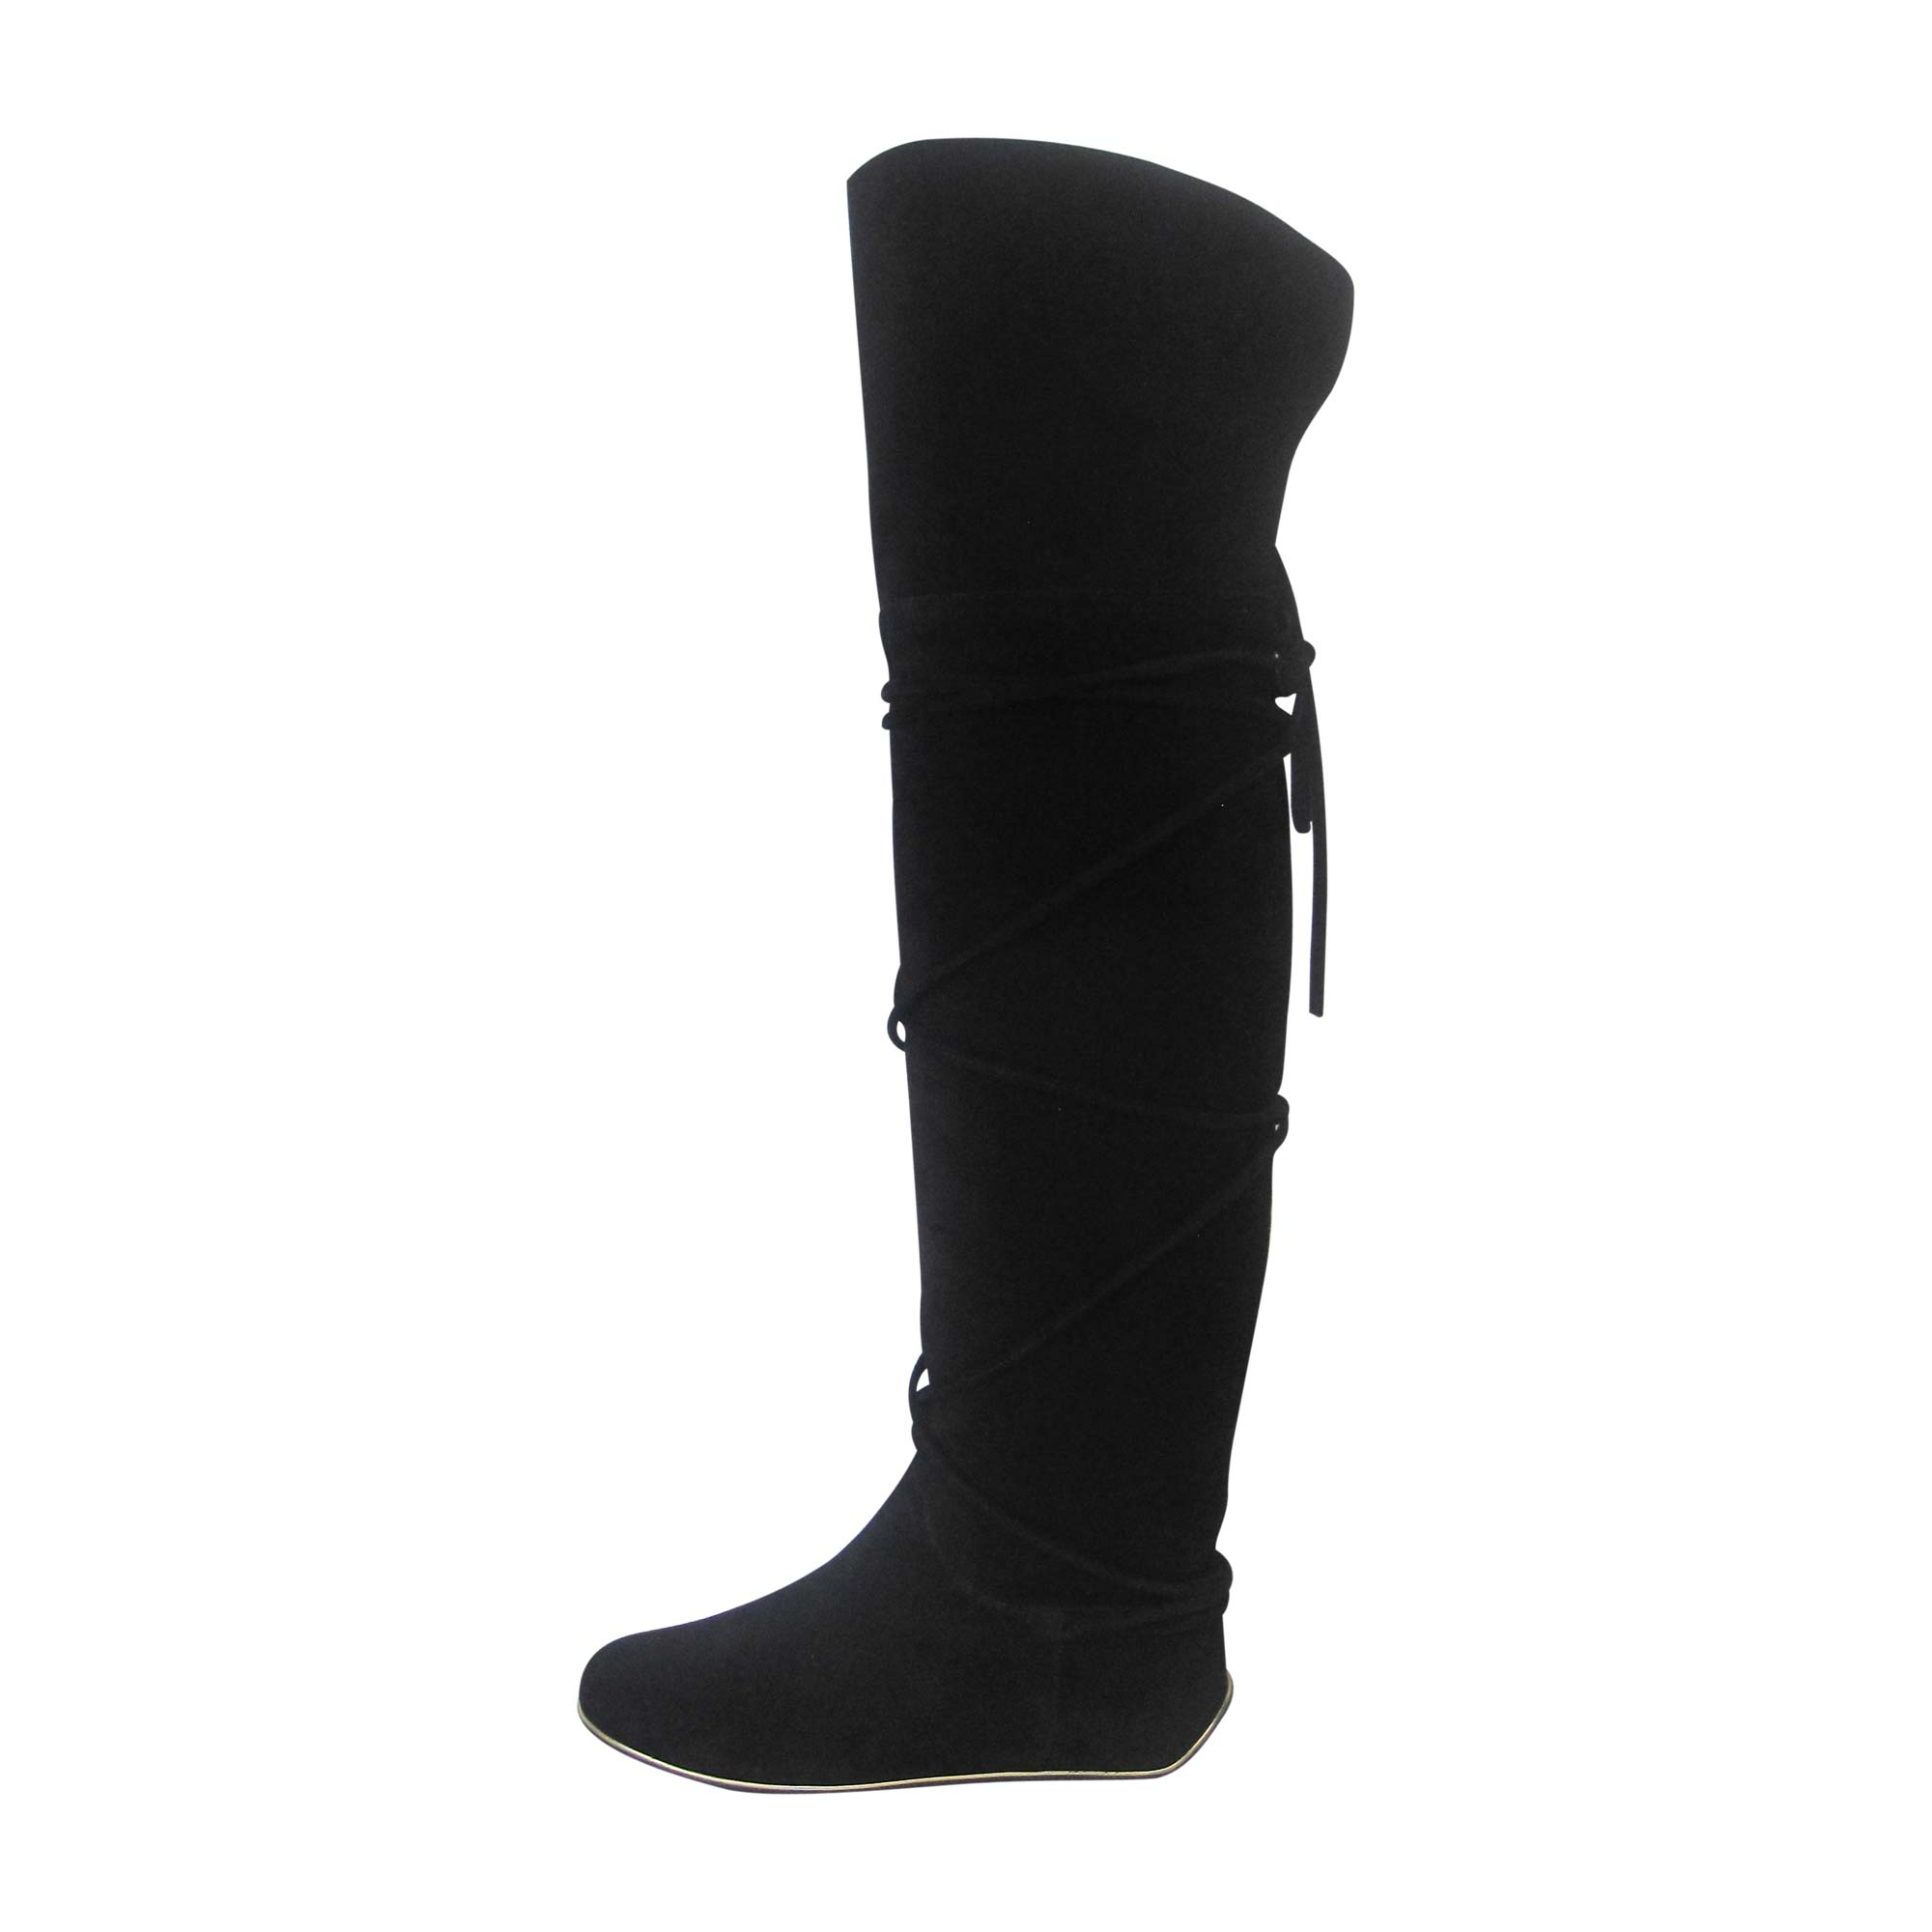 Bottes cuissards SERGIO ROSSI Noir